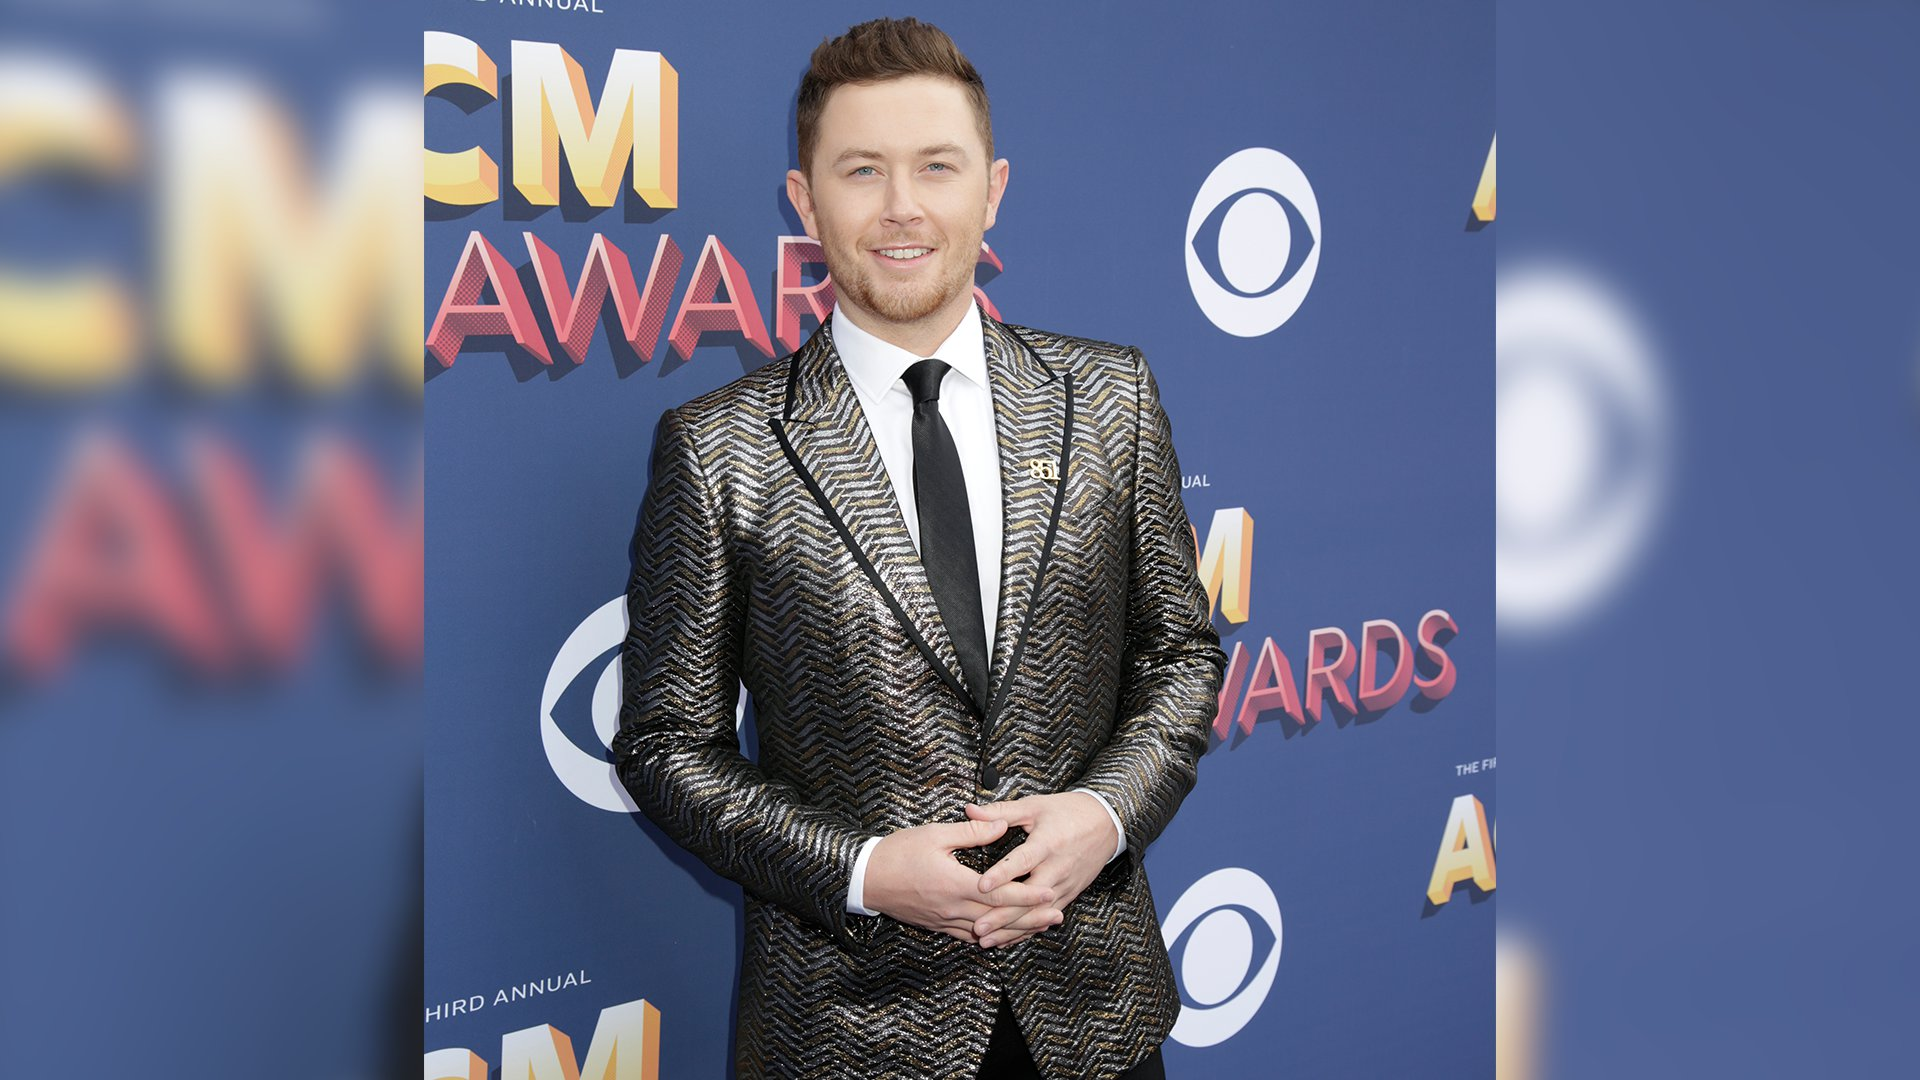 Singer Scotty McCreery looks all grown up in his gold herringbone jacket and black-piped lapel.